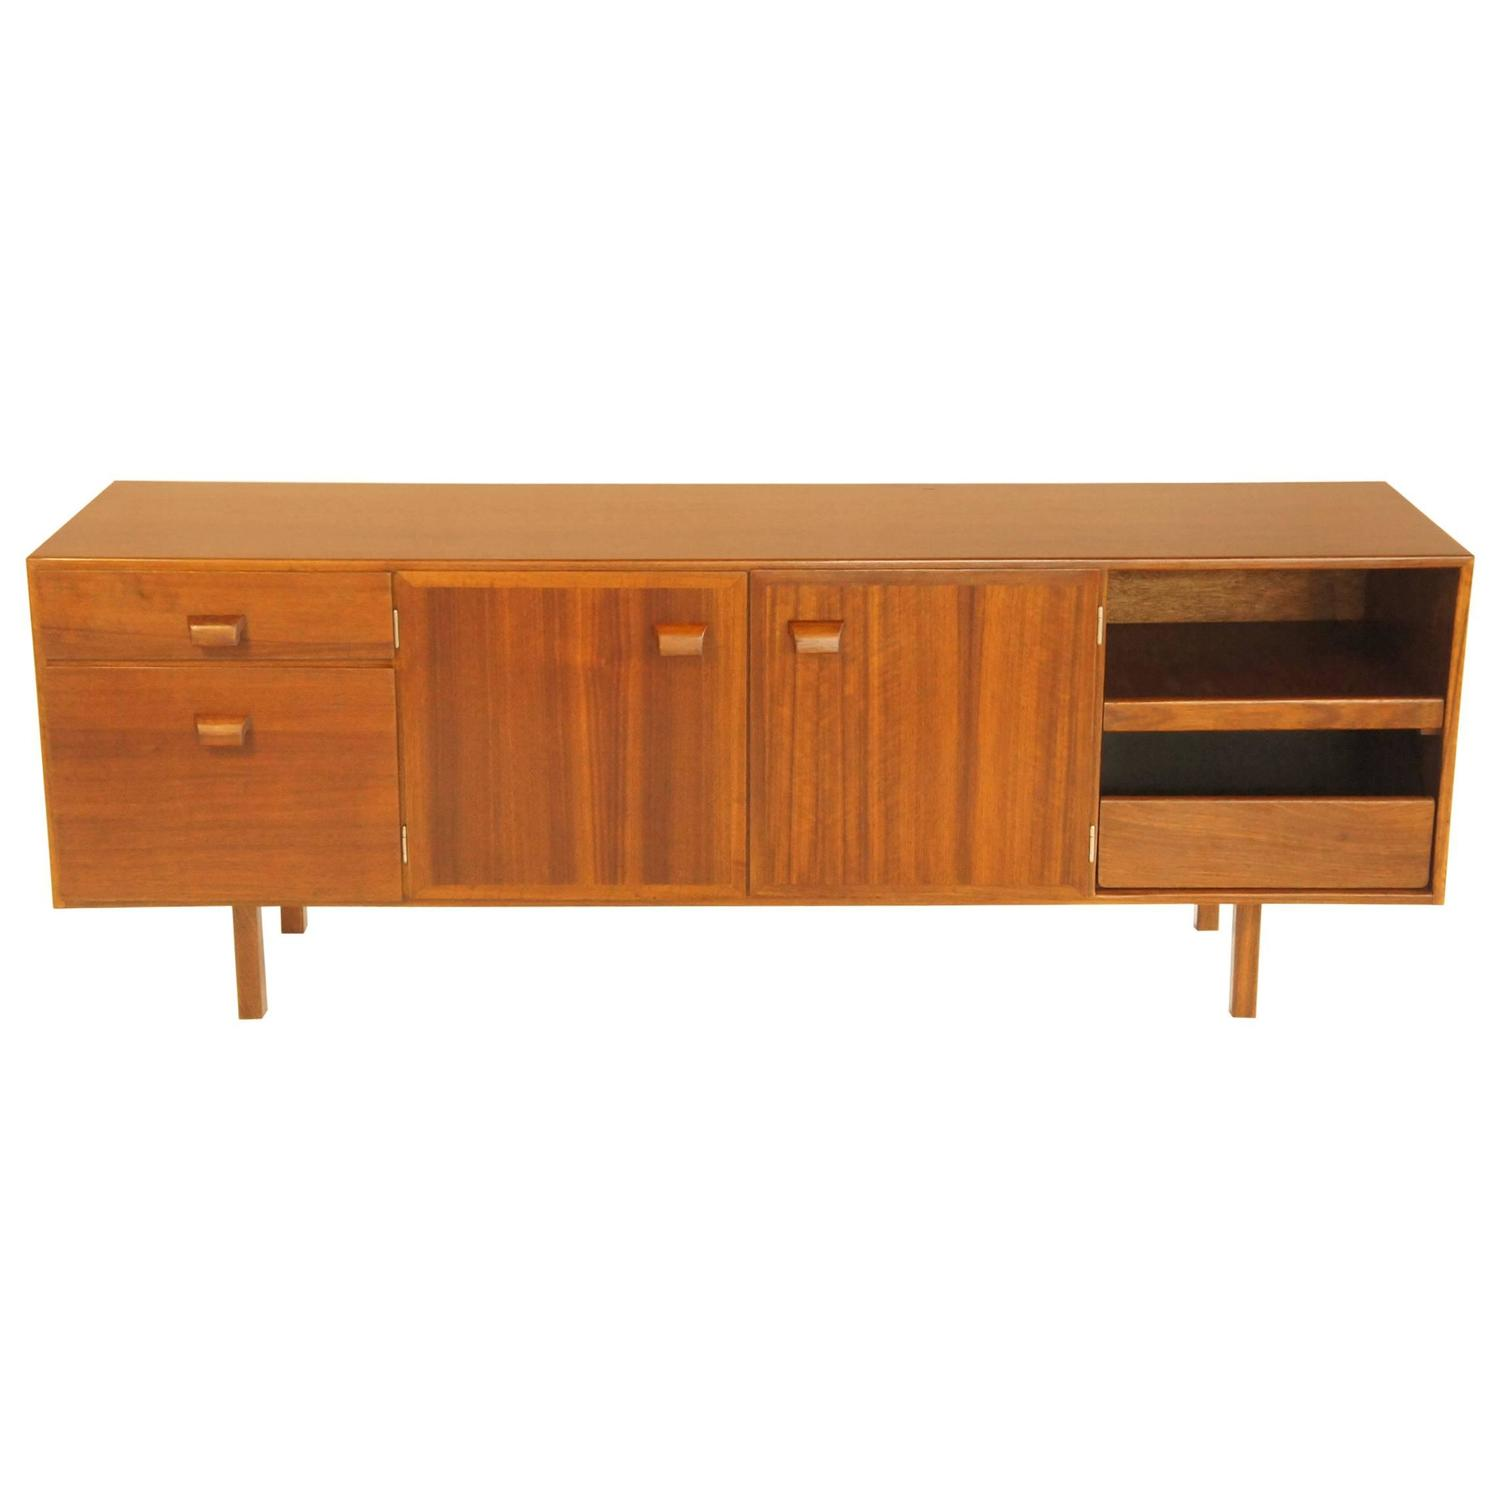 Executive blackbean buffet by jens risom at 1stdibs for Furniture of america alton modern multi storage buffet espresso